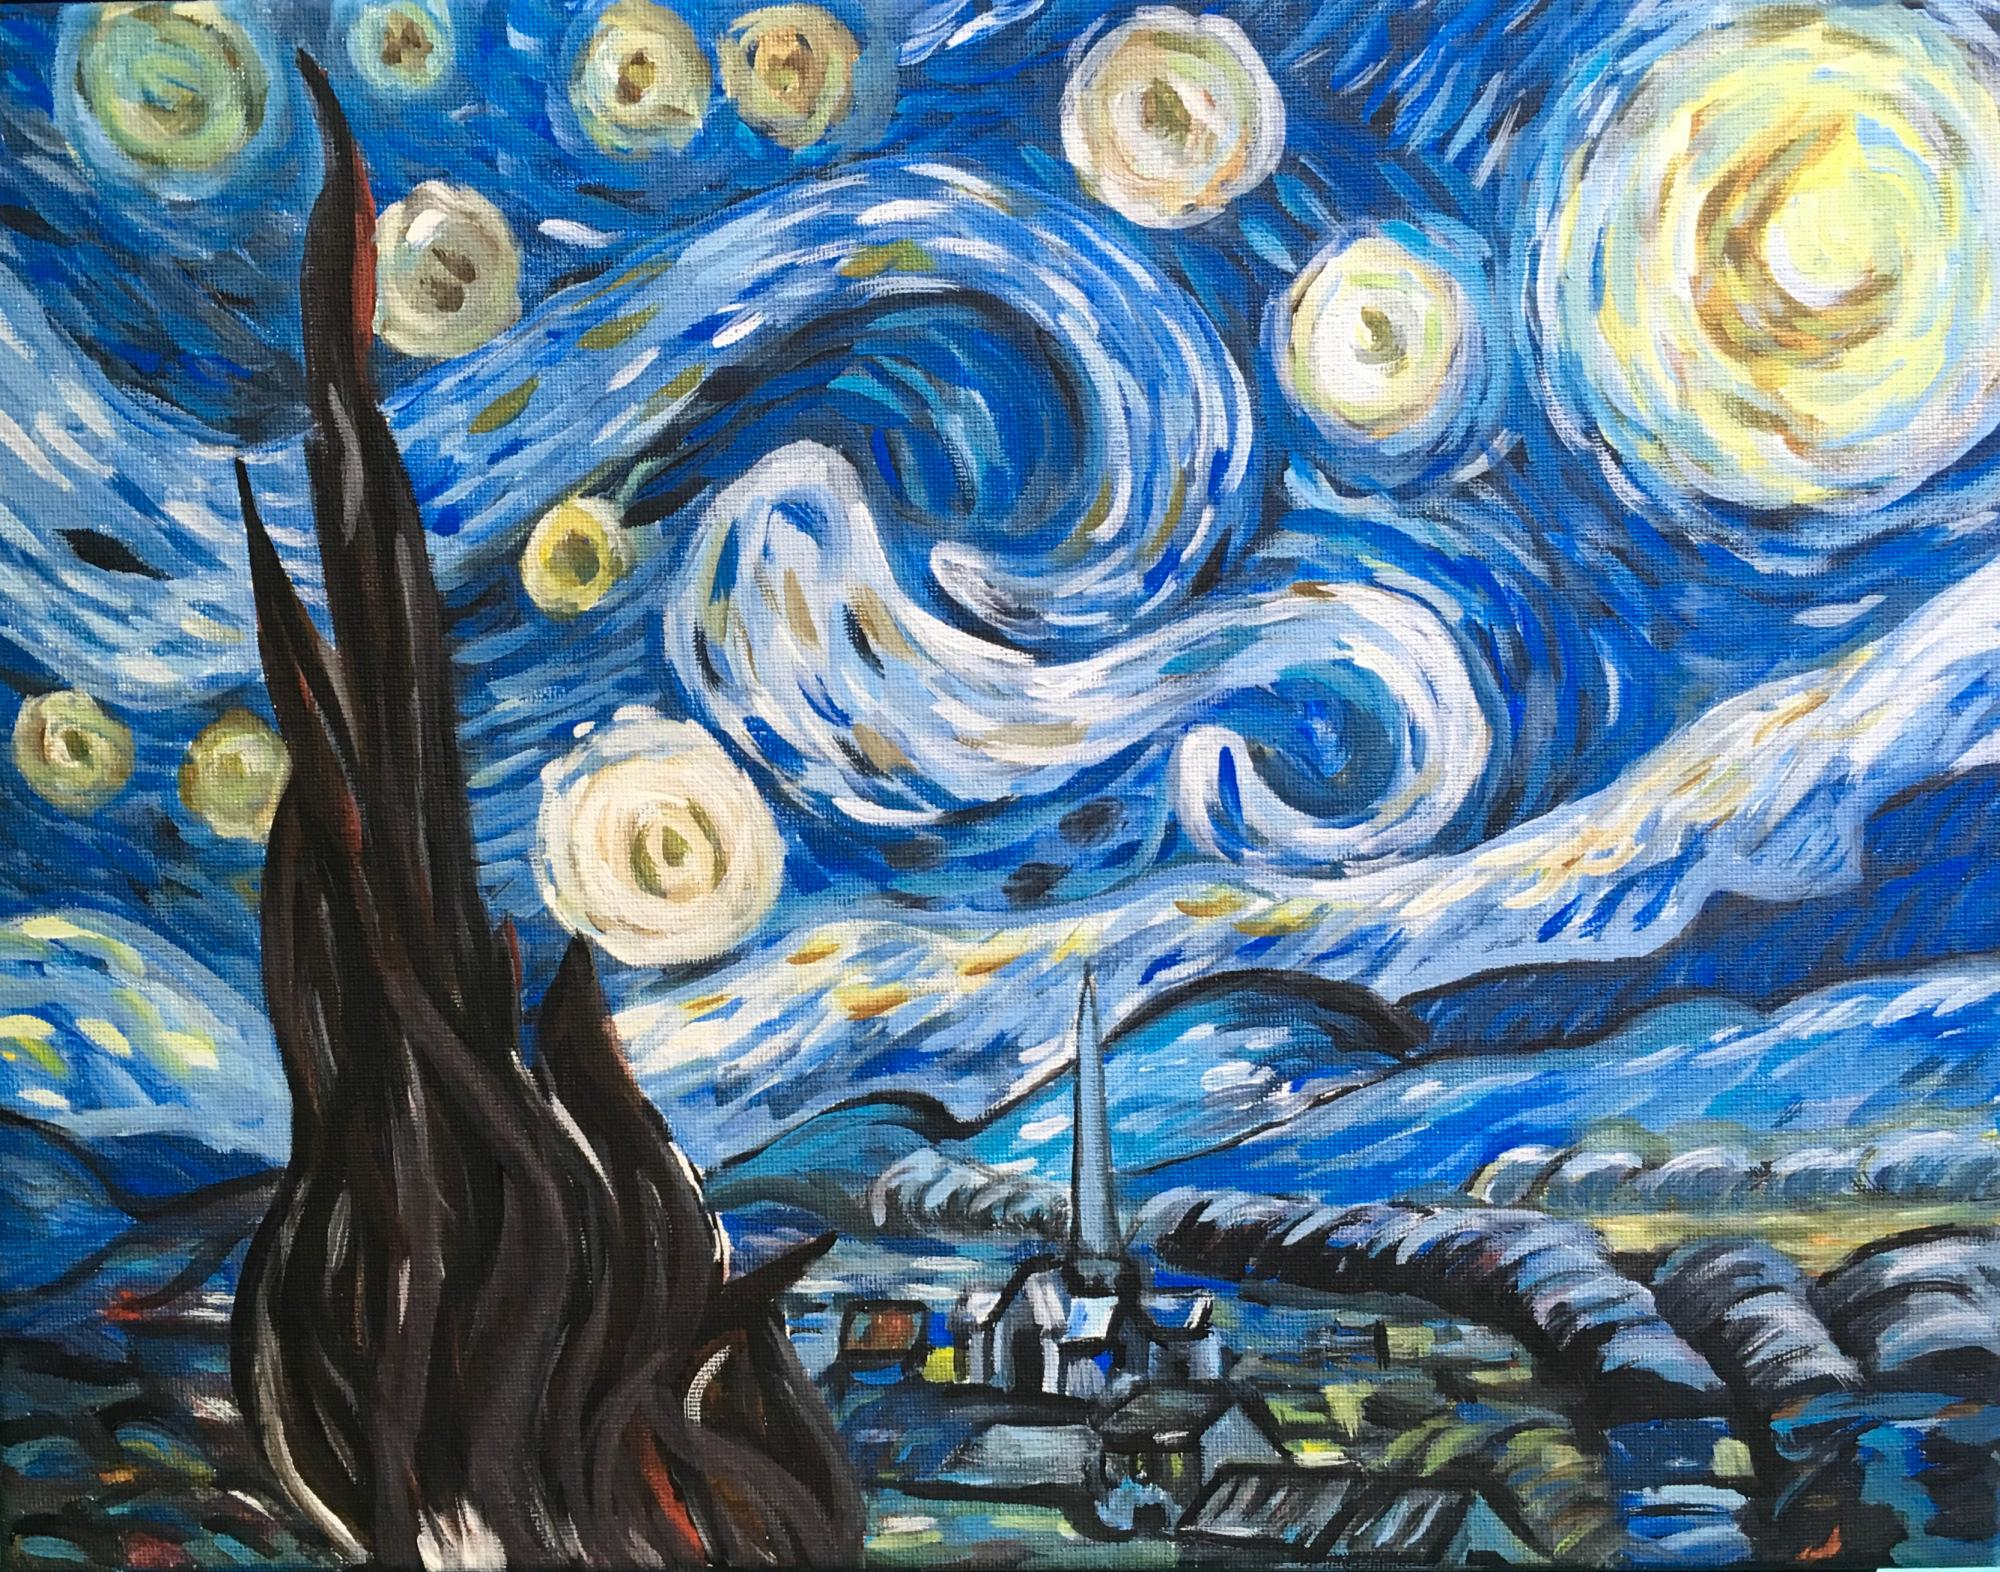 Mystarry_night.jpg